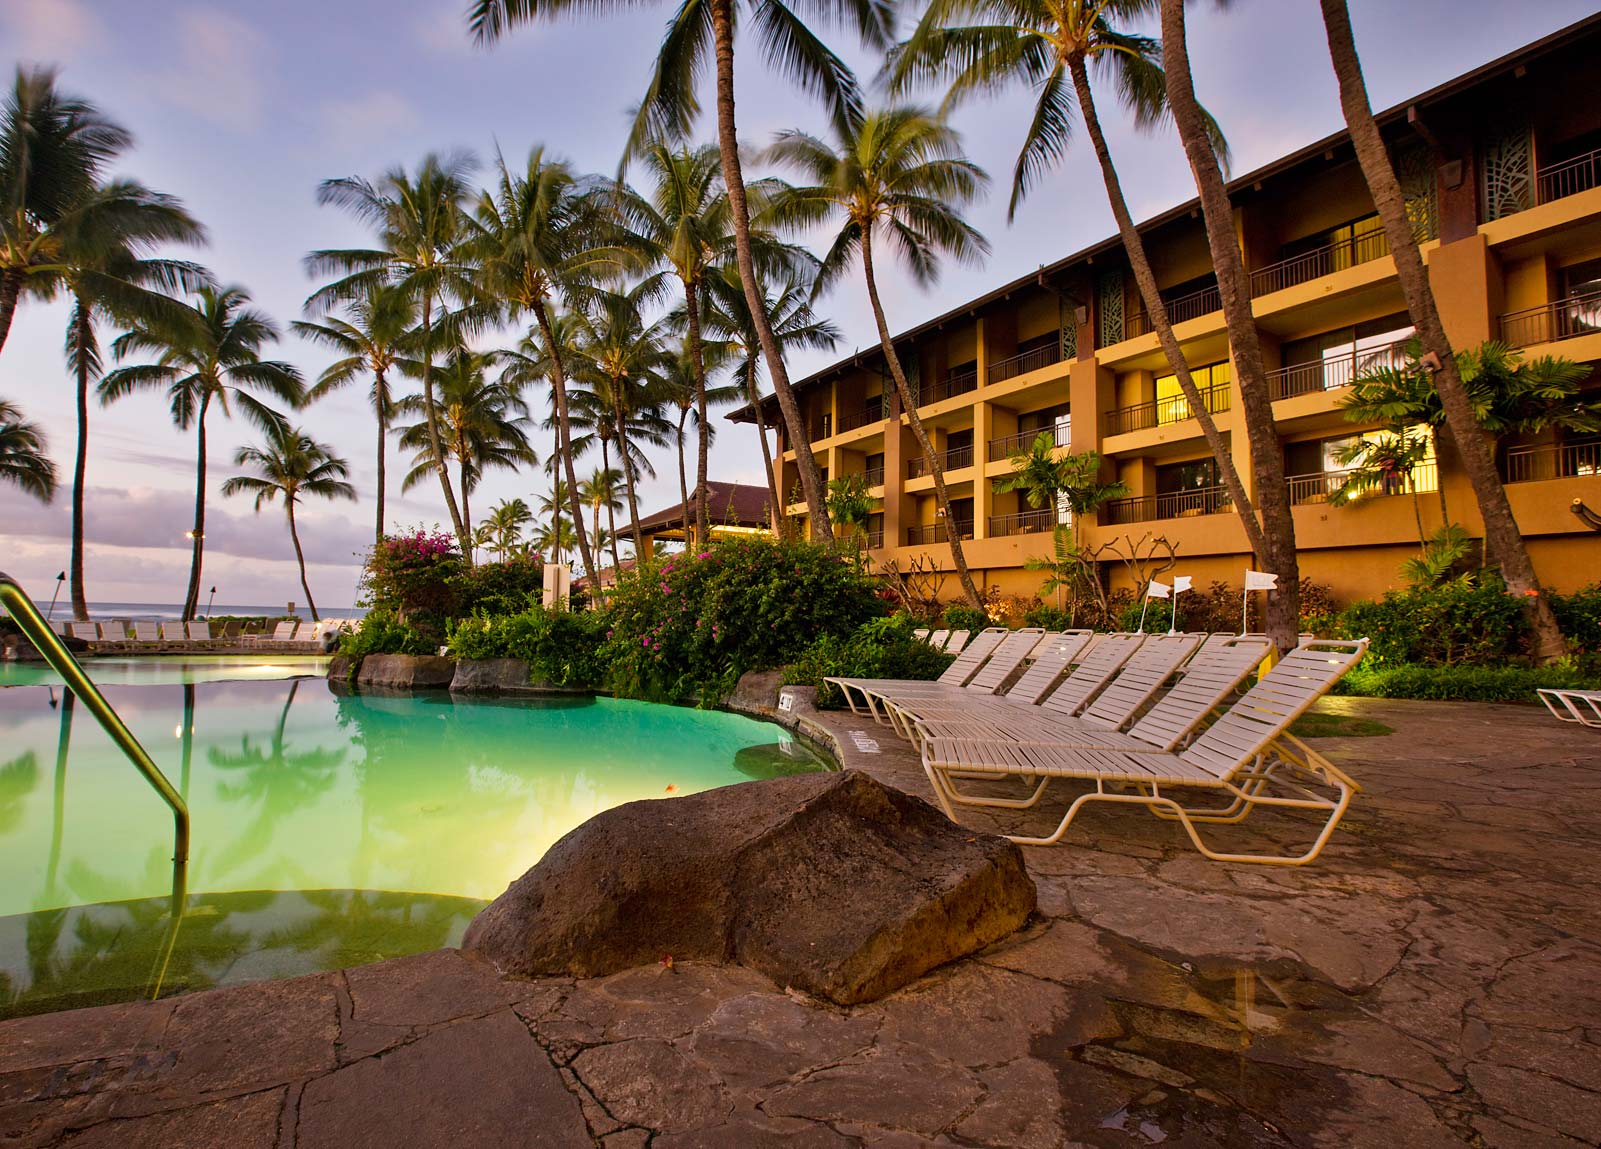 Kauai All Inclusive Vacations All Inclusive Vacations To